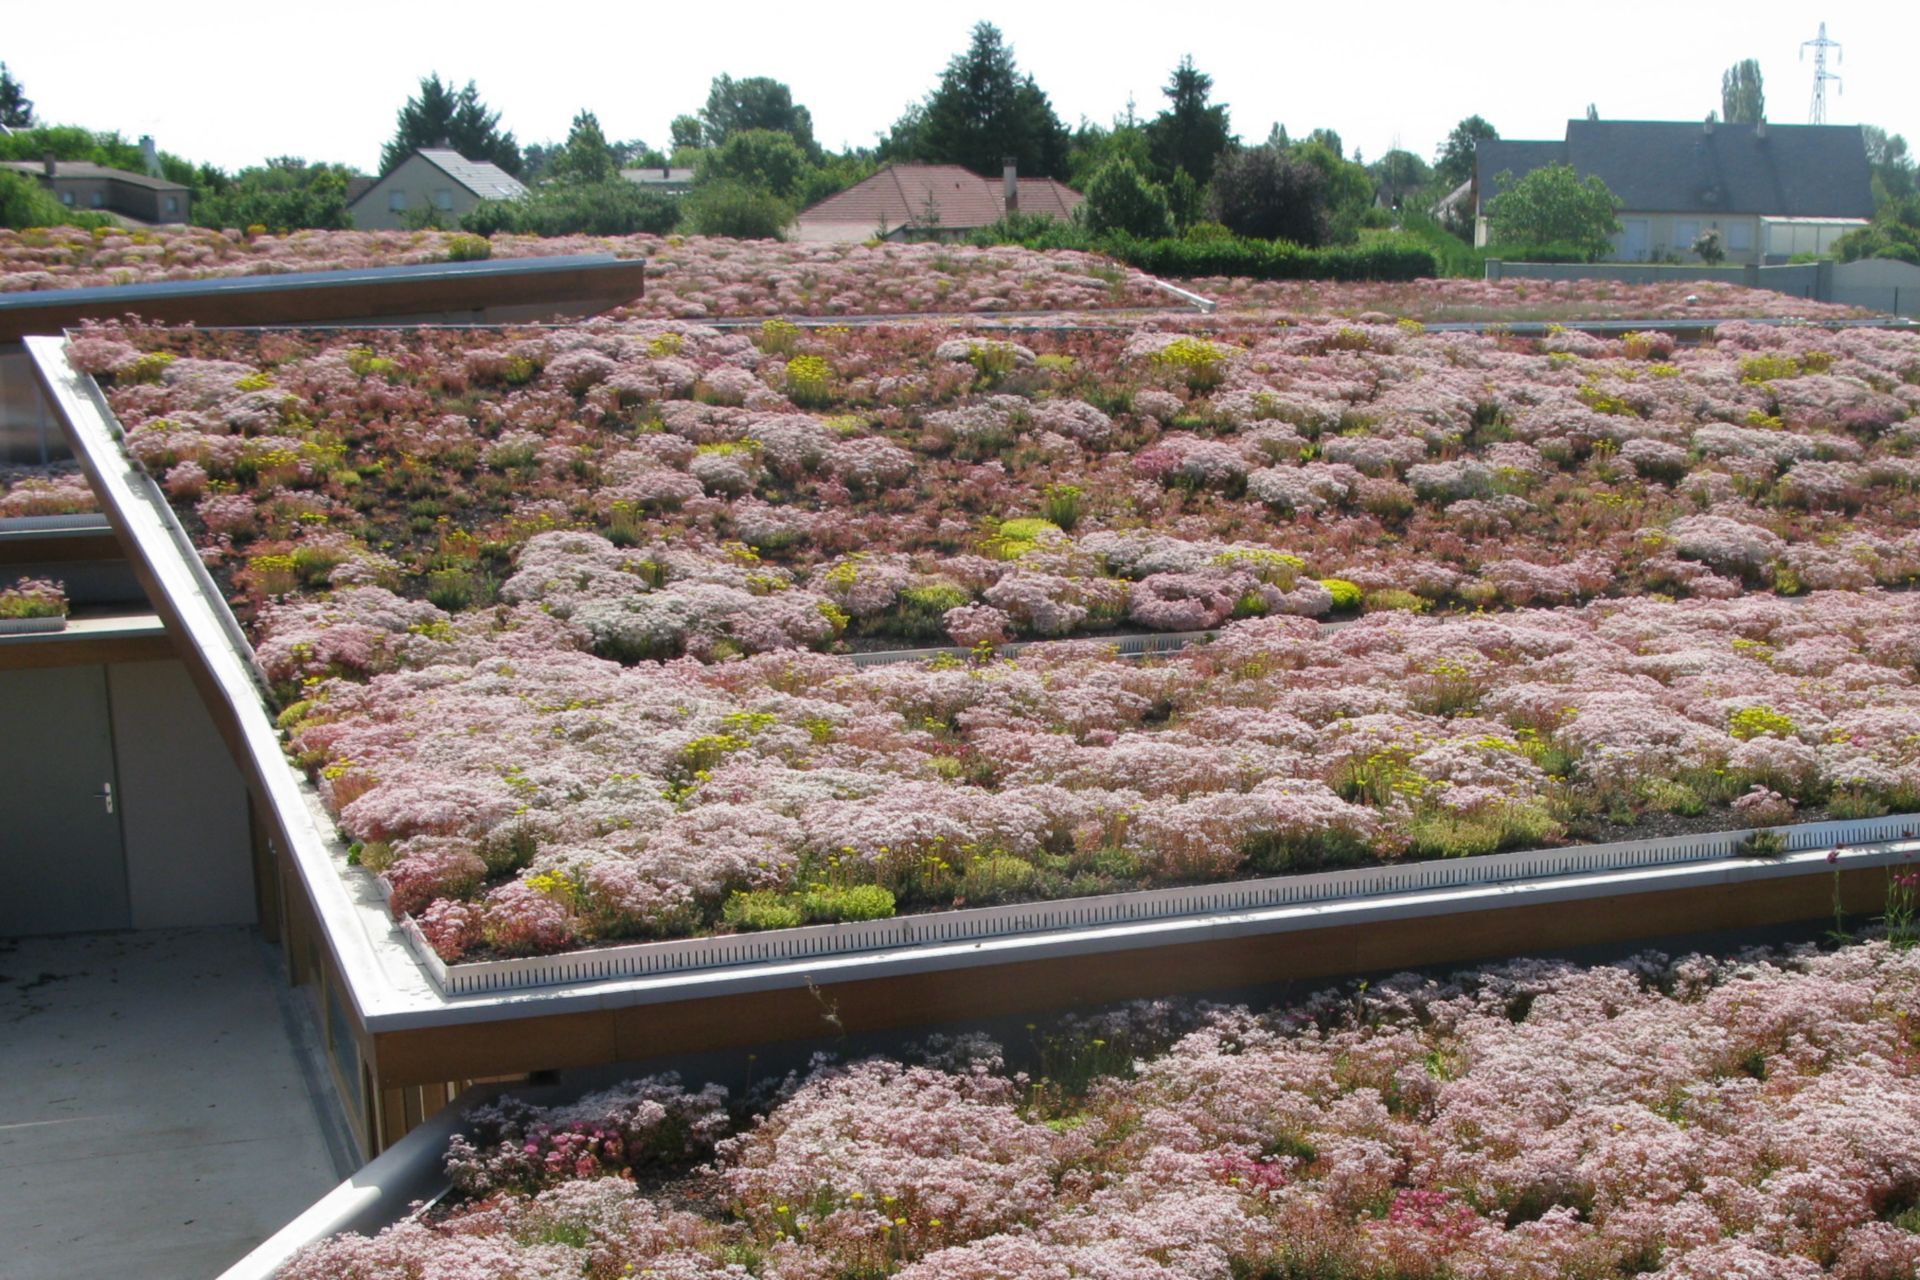 The green roof of a nursing home in France